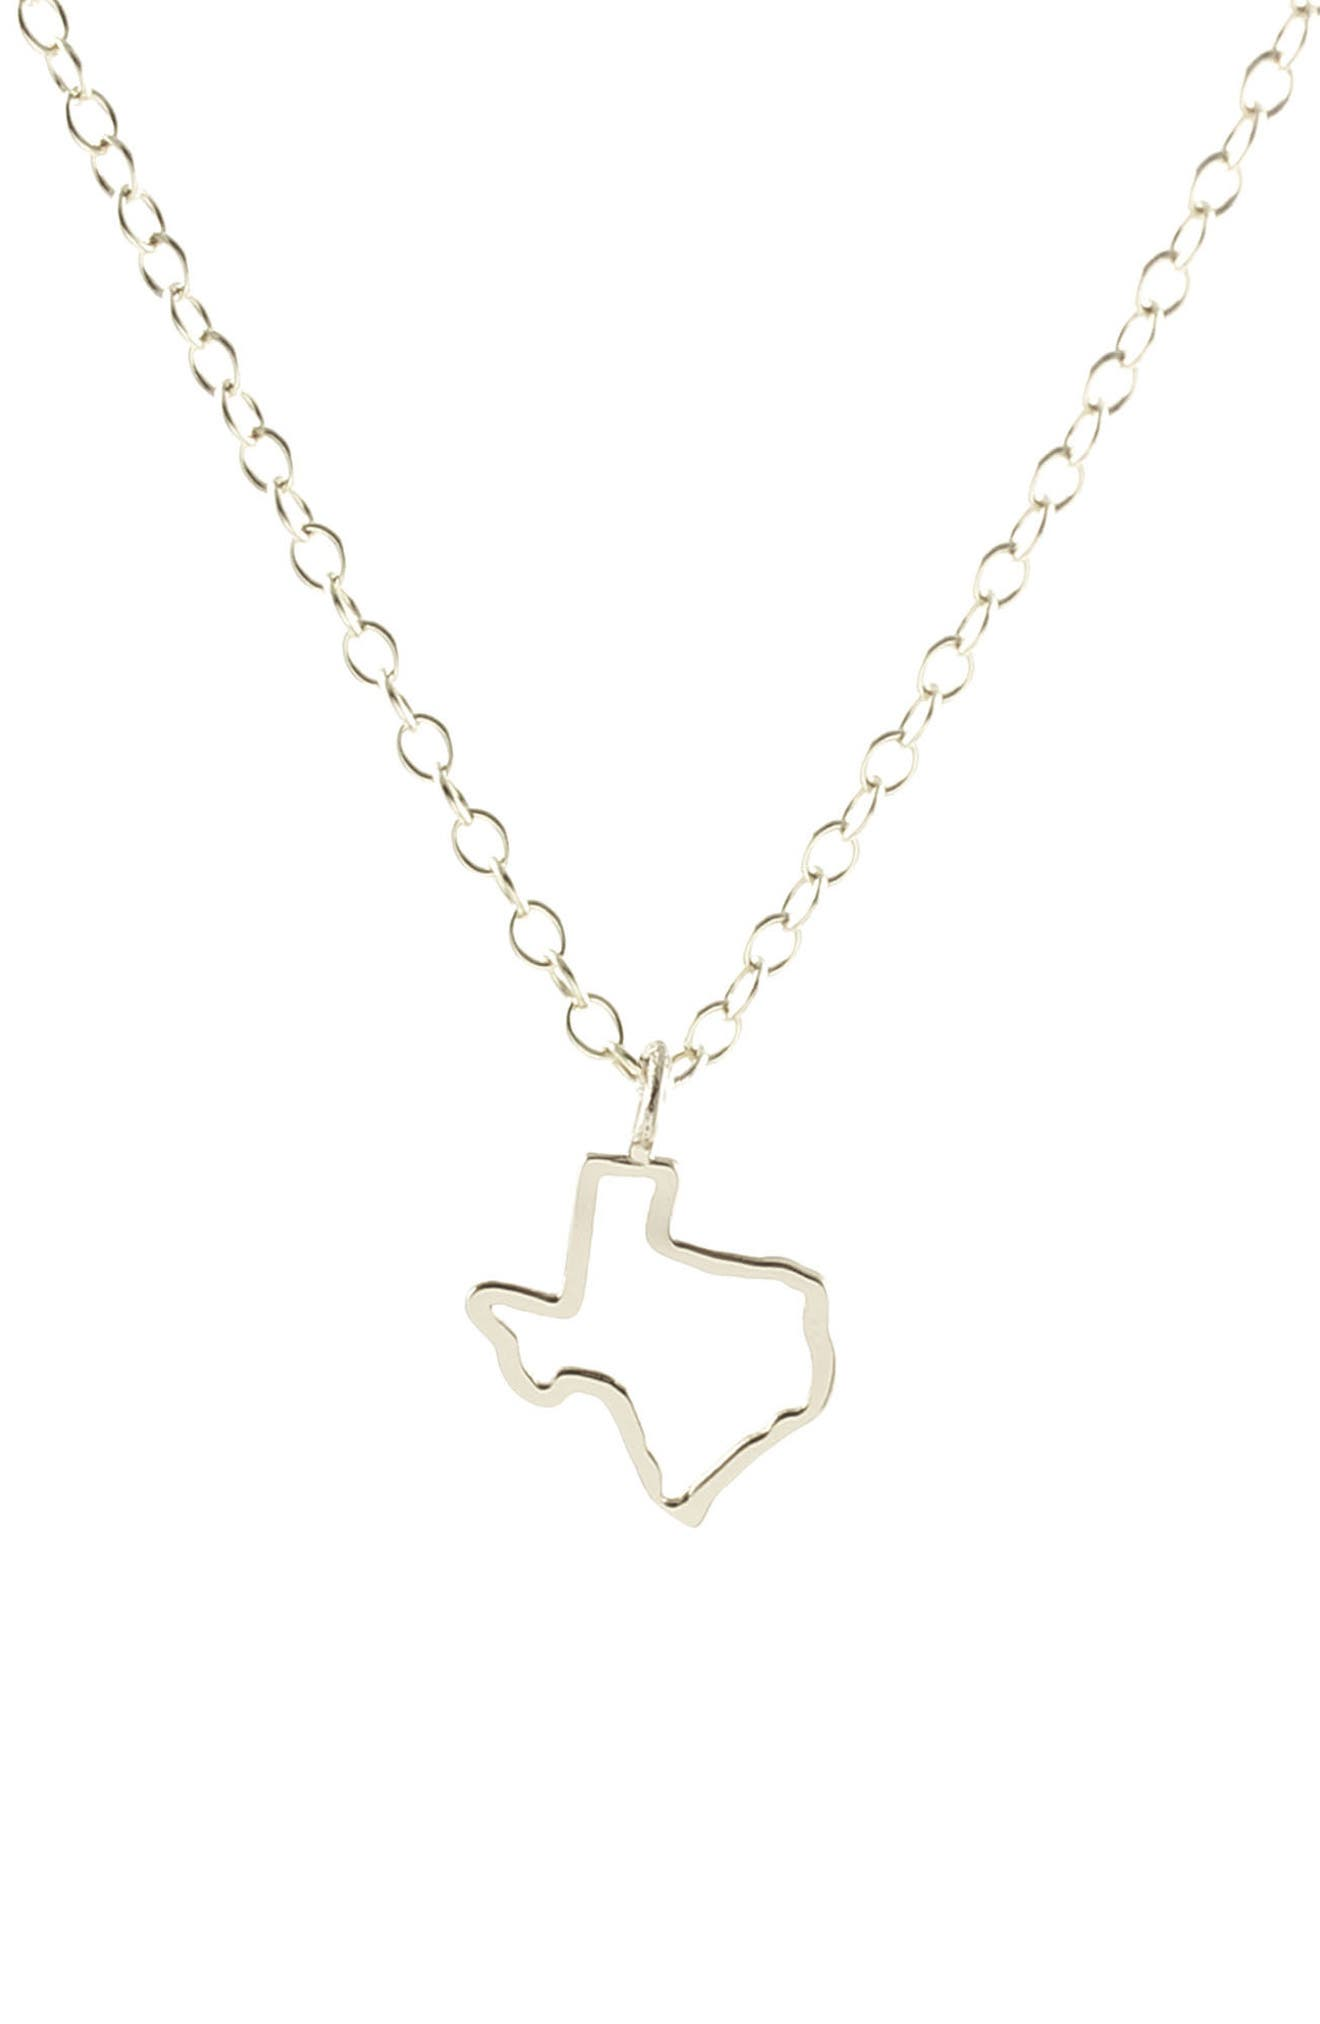 Texas Outline Charm Necklace,                         Main,                         color, TEXAS - SILVER